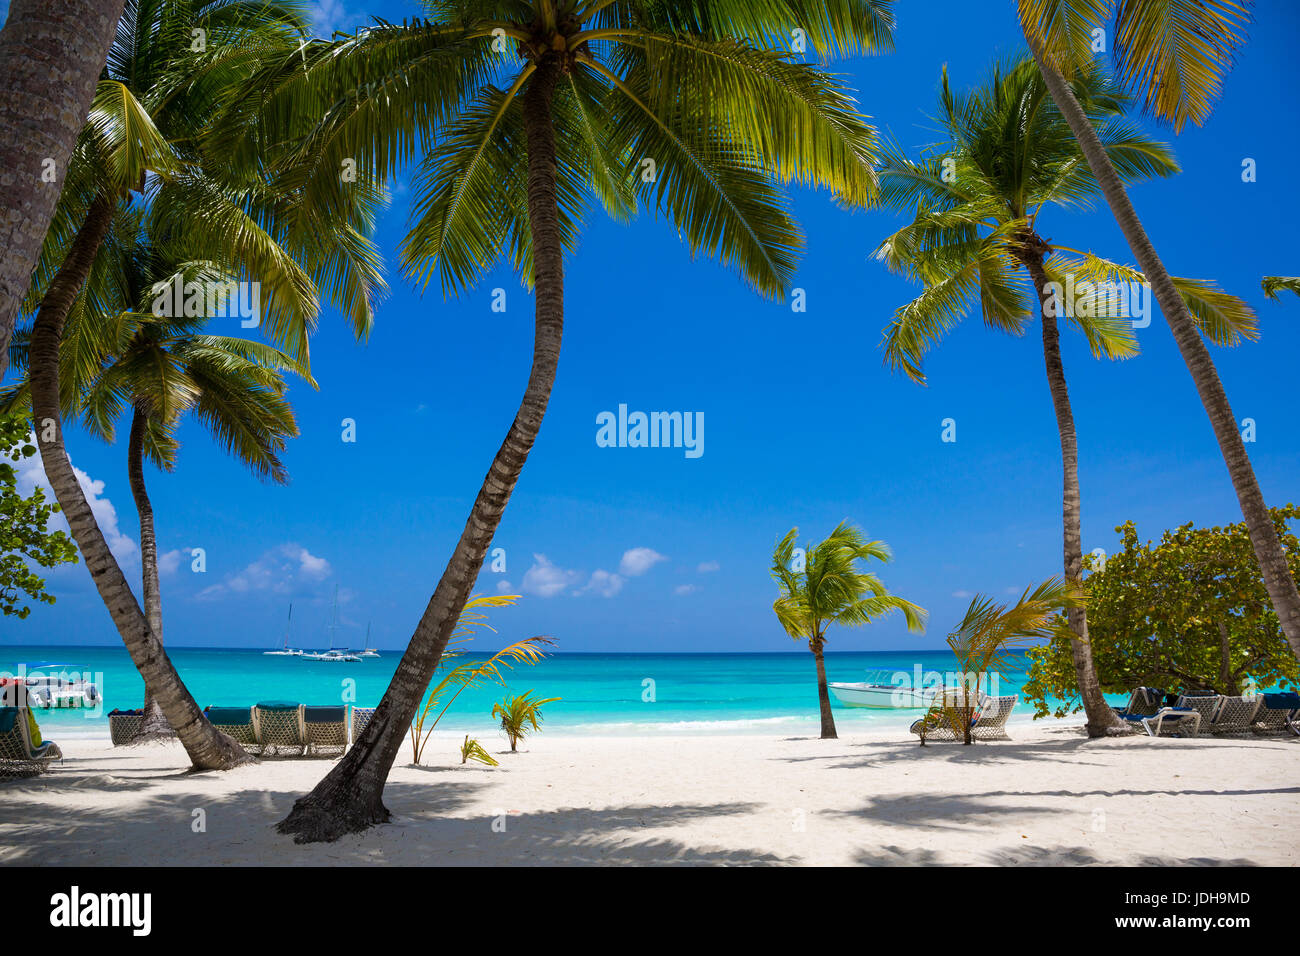 coconut palm trees with blue sky and white sand near sea - Stock Image